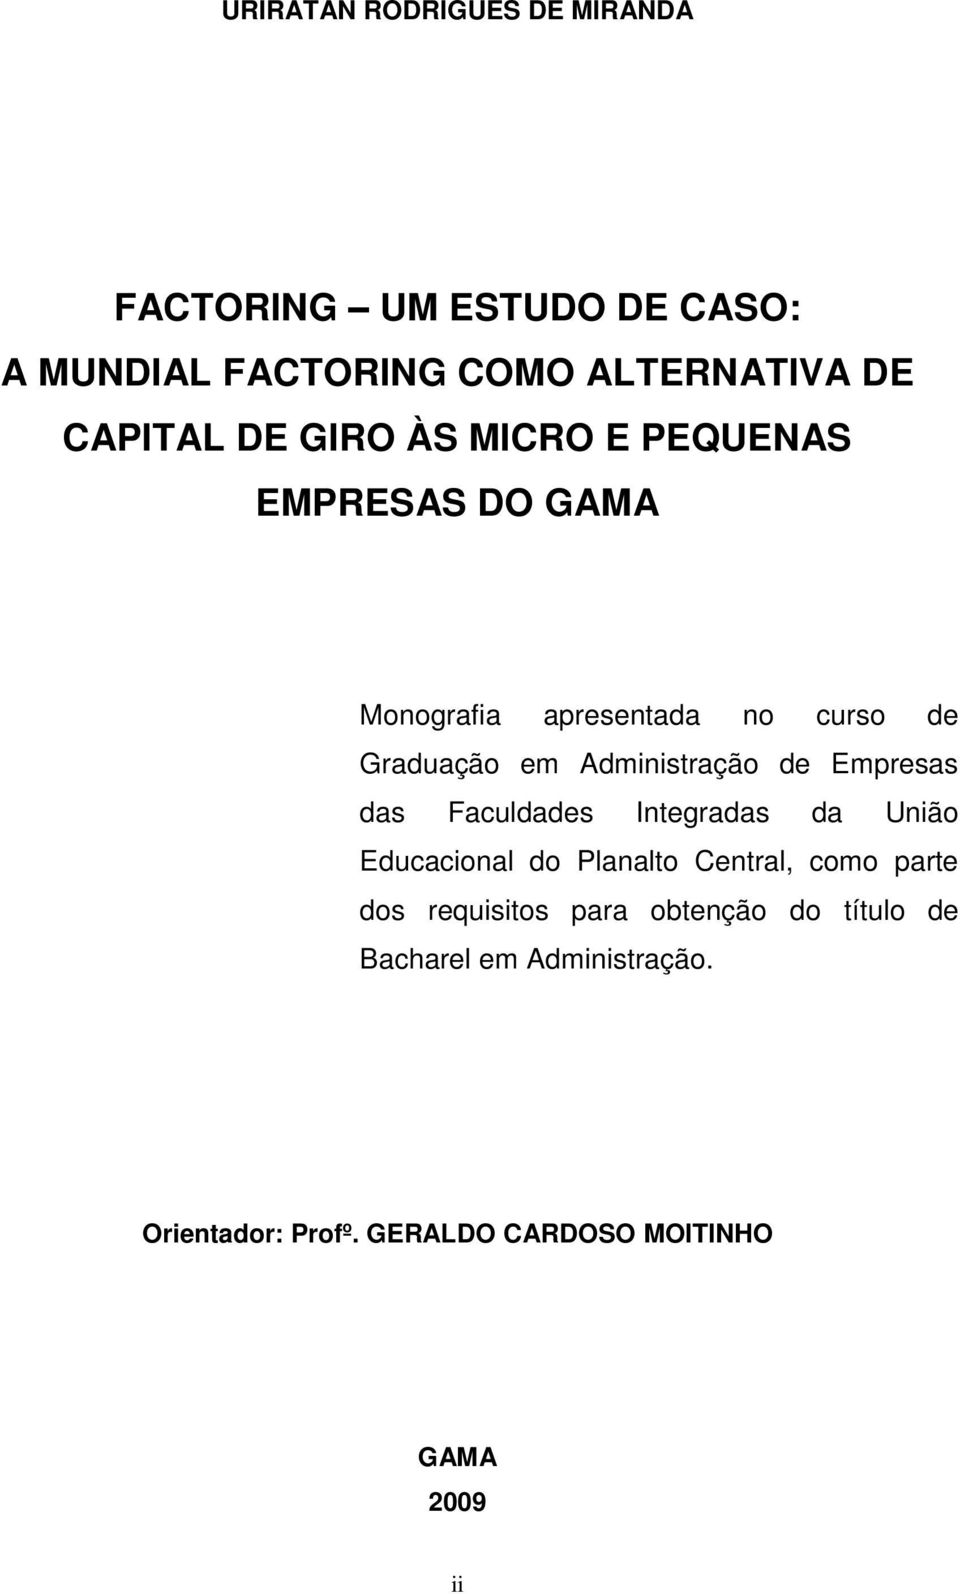 de Empresas das Faculdades Integradas da União Educacional do Planalto Central, como parte dos requisitos